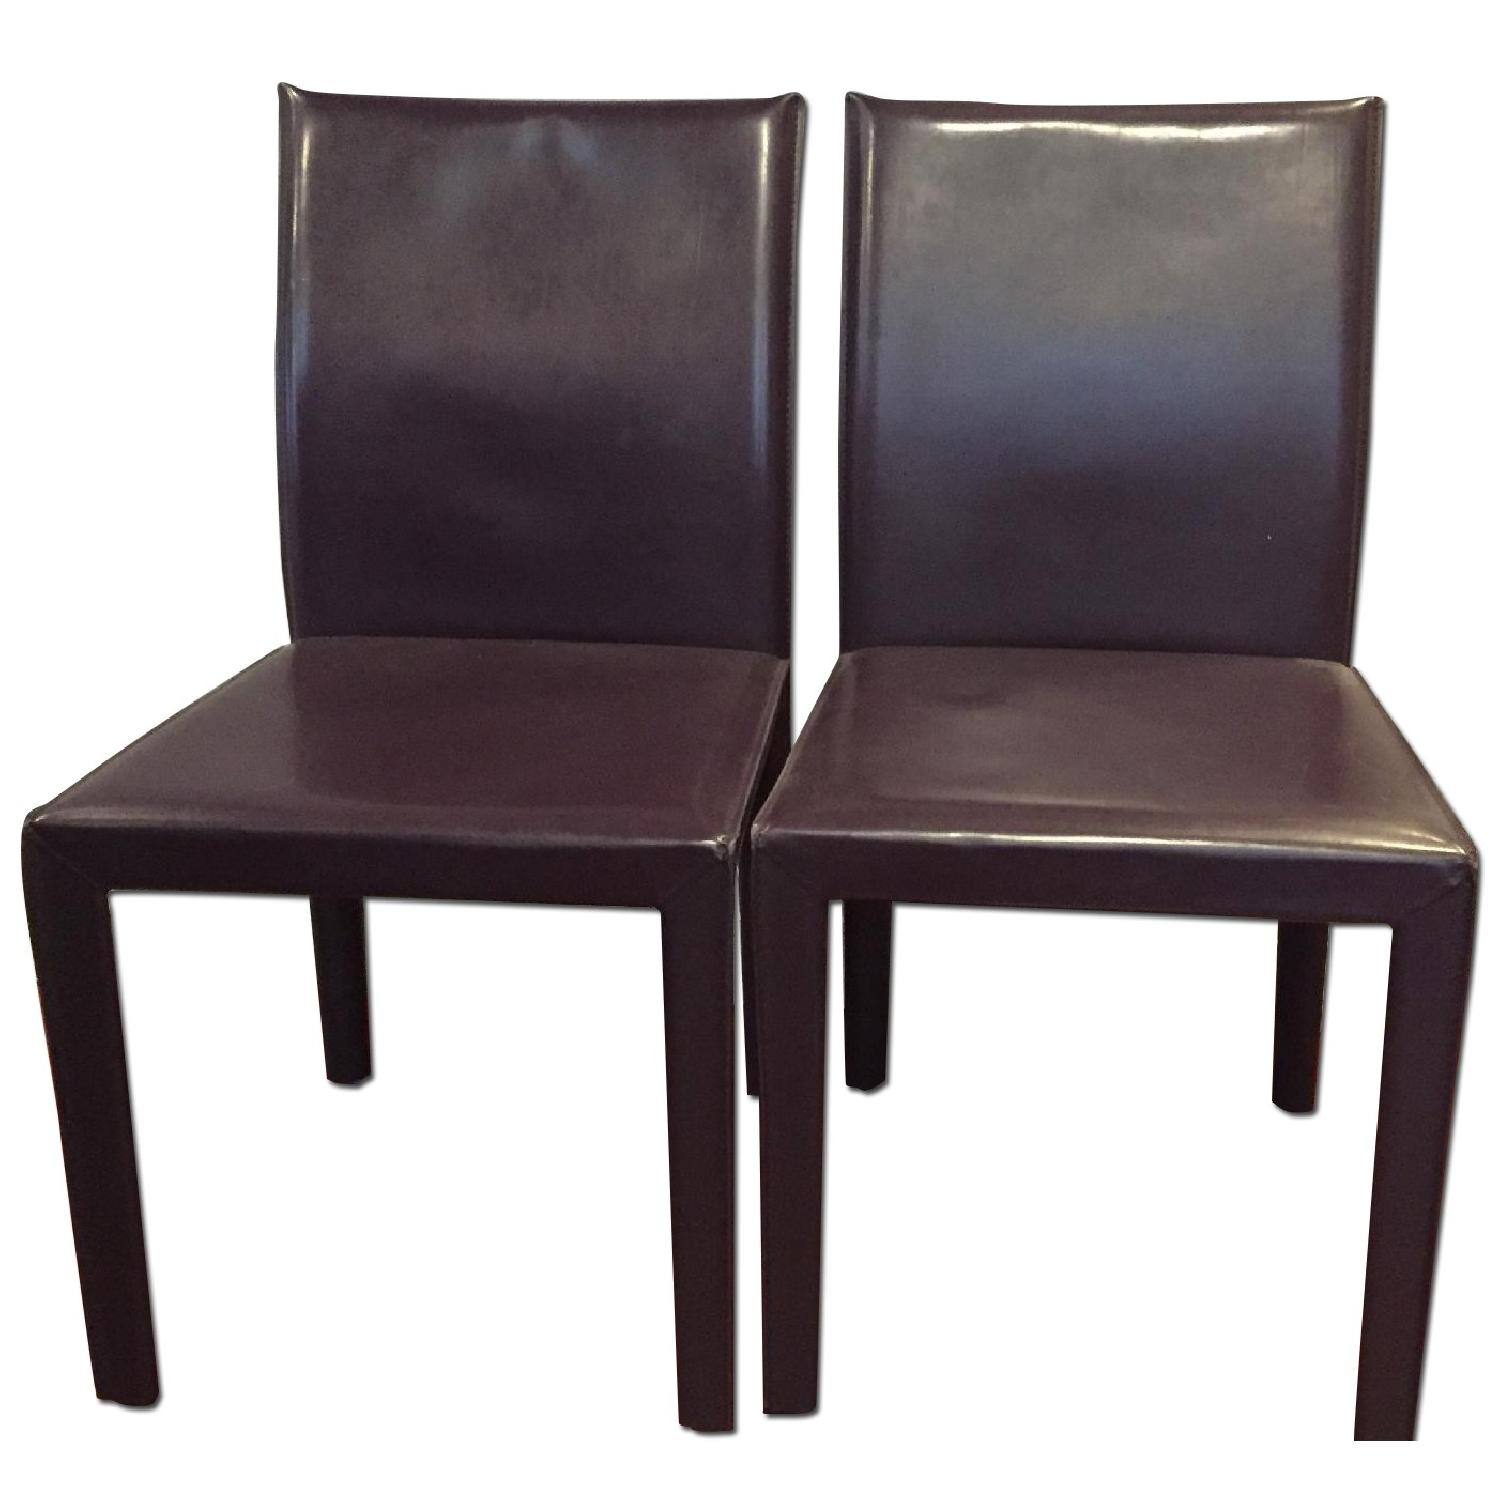 Maria Yee Leather Side Chair in Plum - Pair - image-0